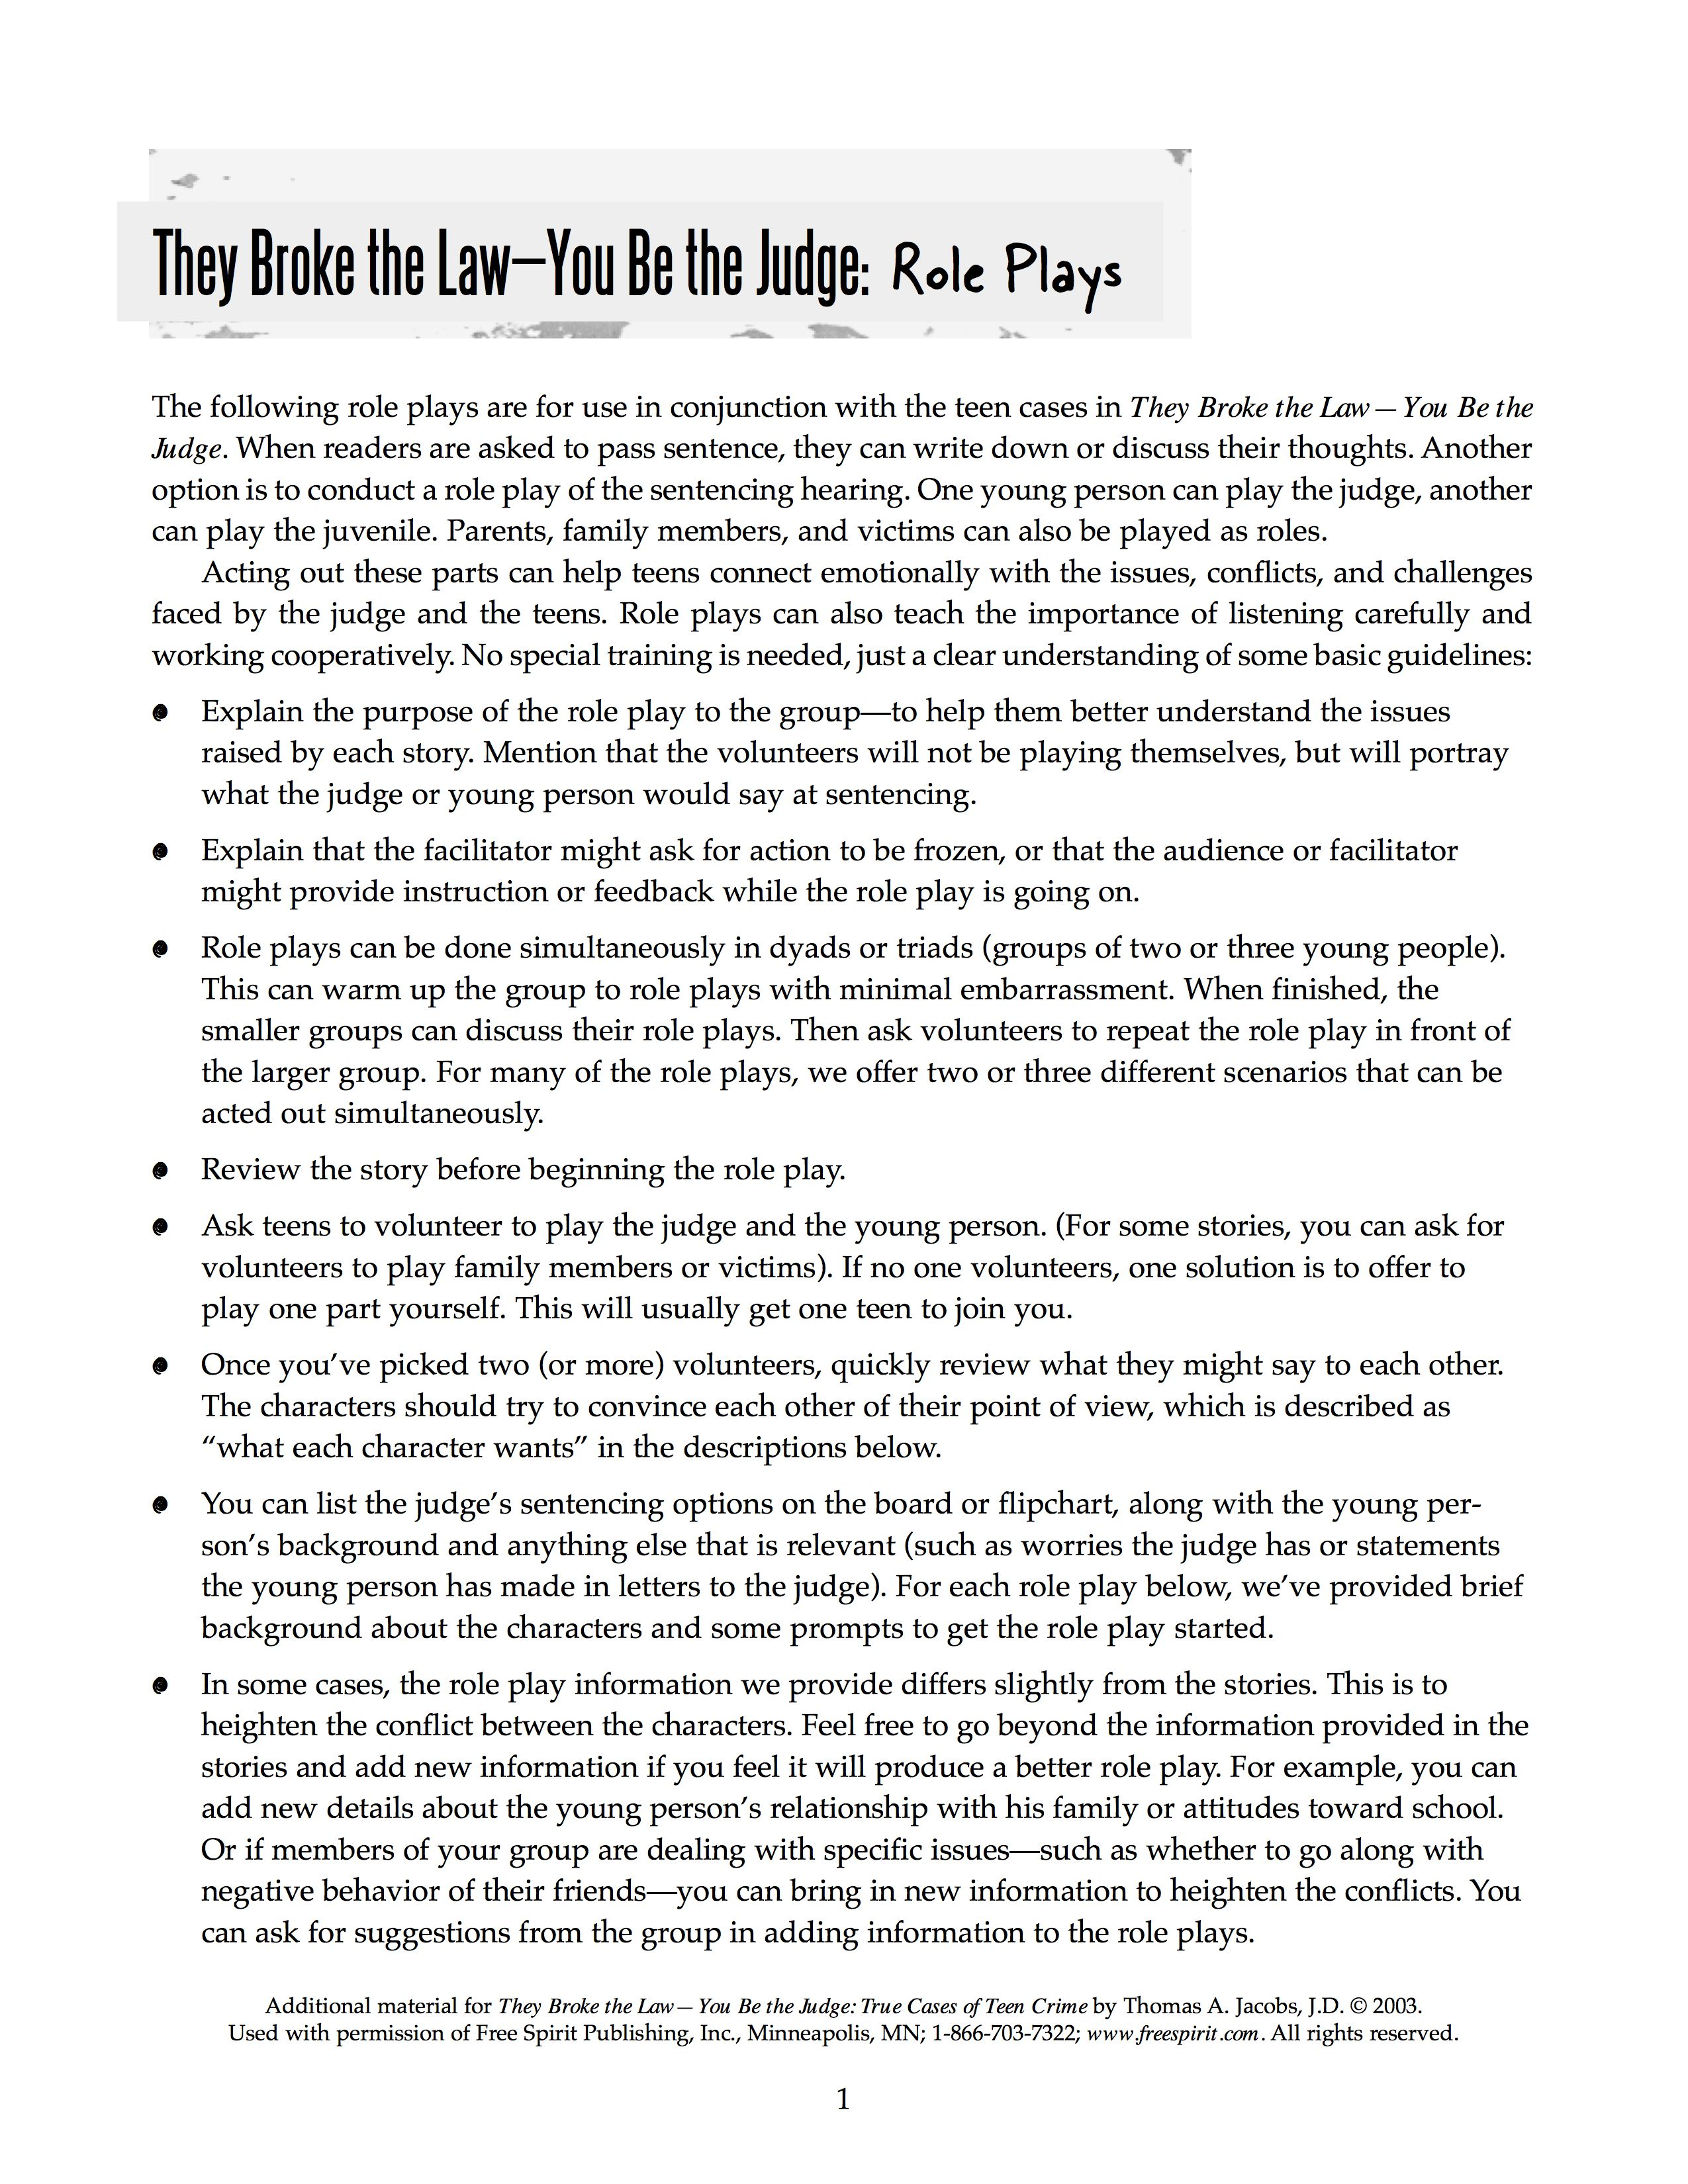 Free Printable Role Play Activities To Use With They